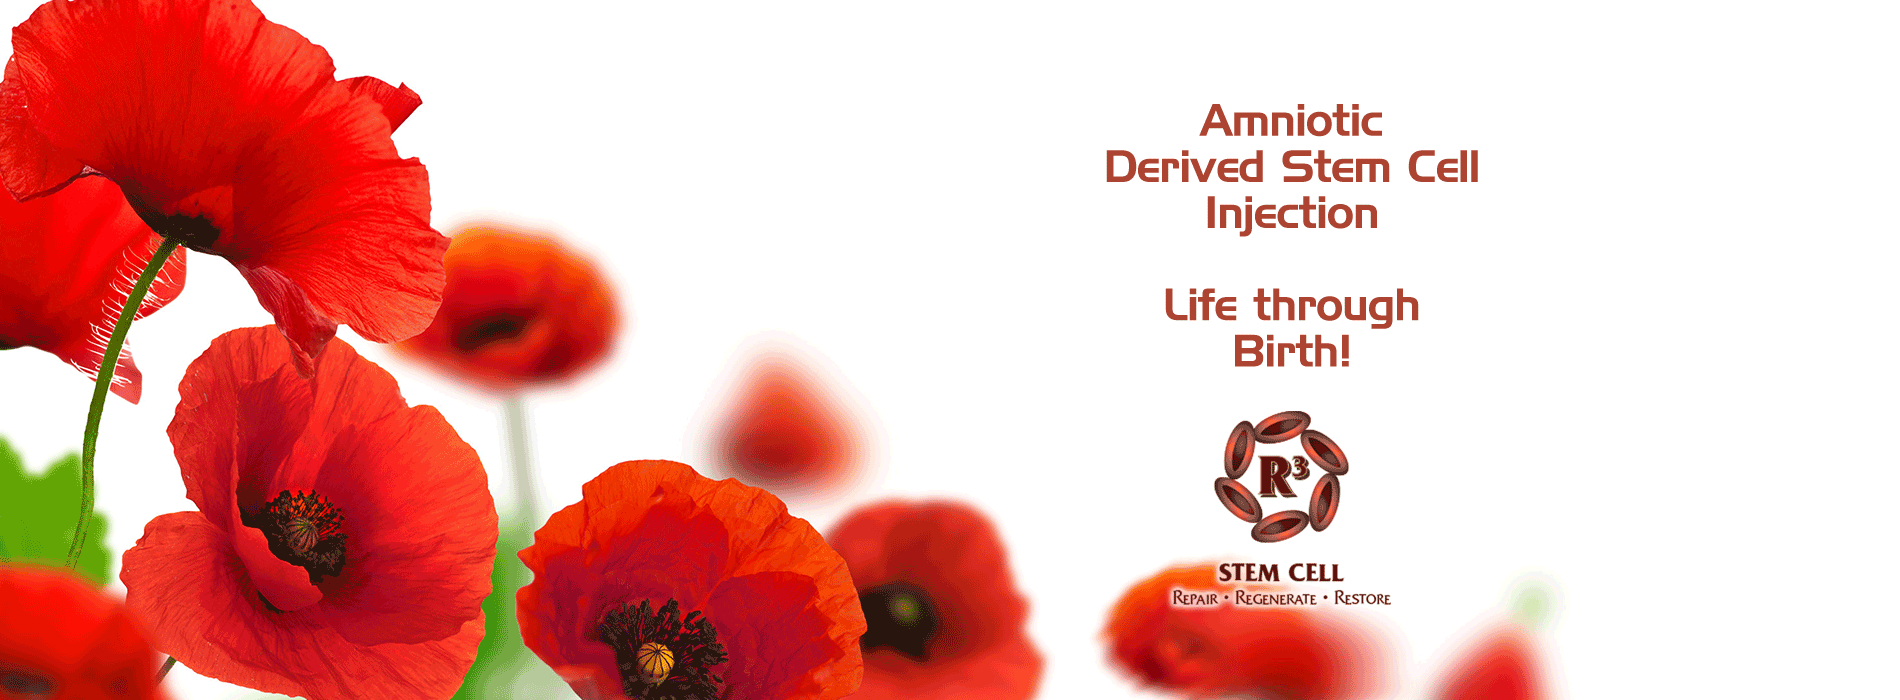 Amniotic Derived Stem Cell Injections Amnion Injections